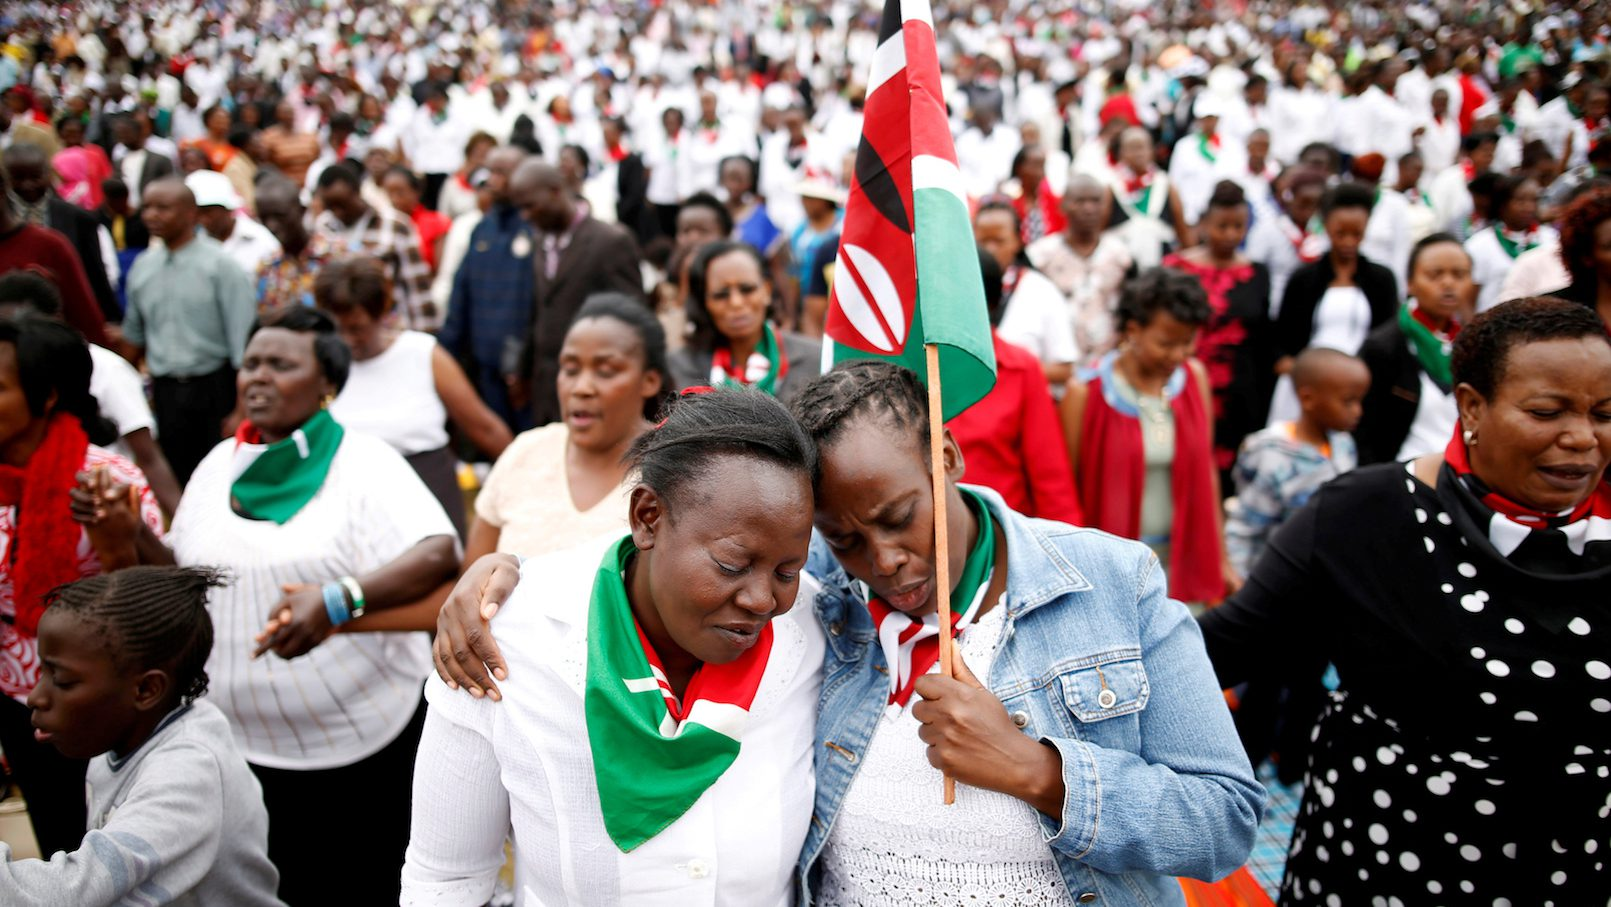 Kenyans pray during a rally calling for peace ahead of Kenya's August 8 election in Nairobi, Kenya July 30